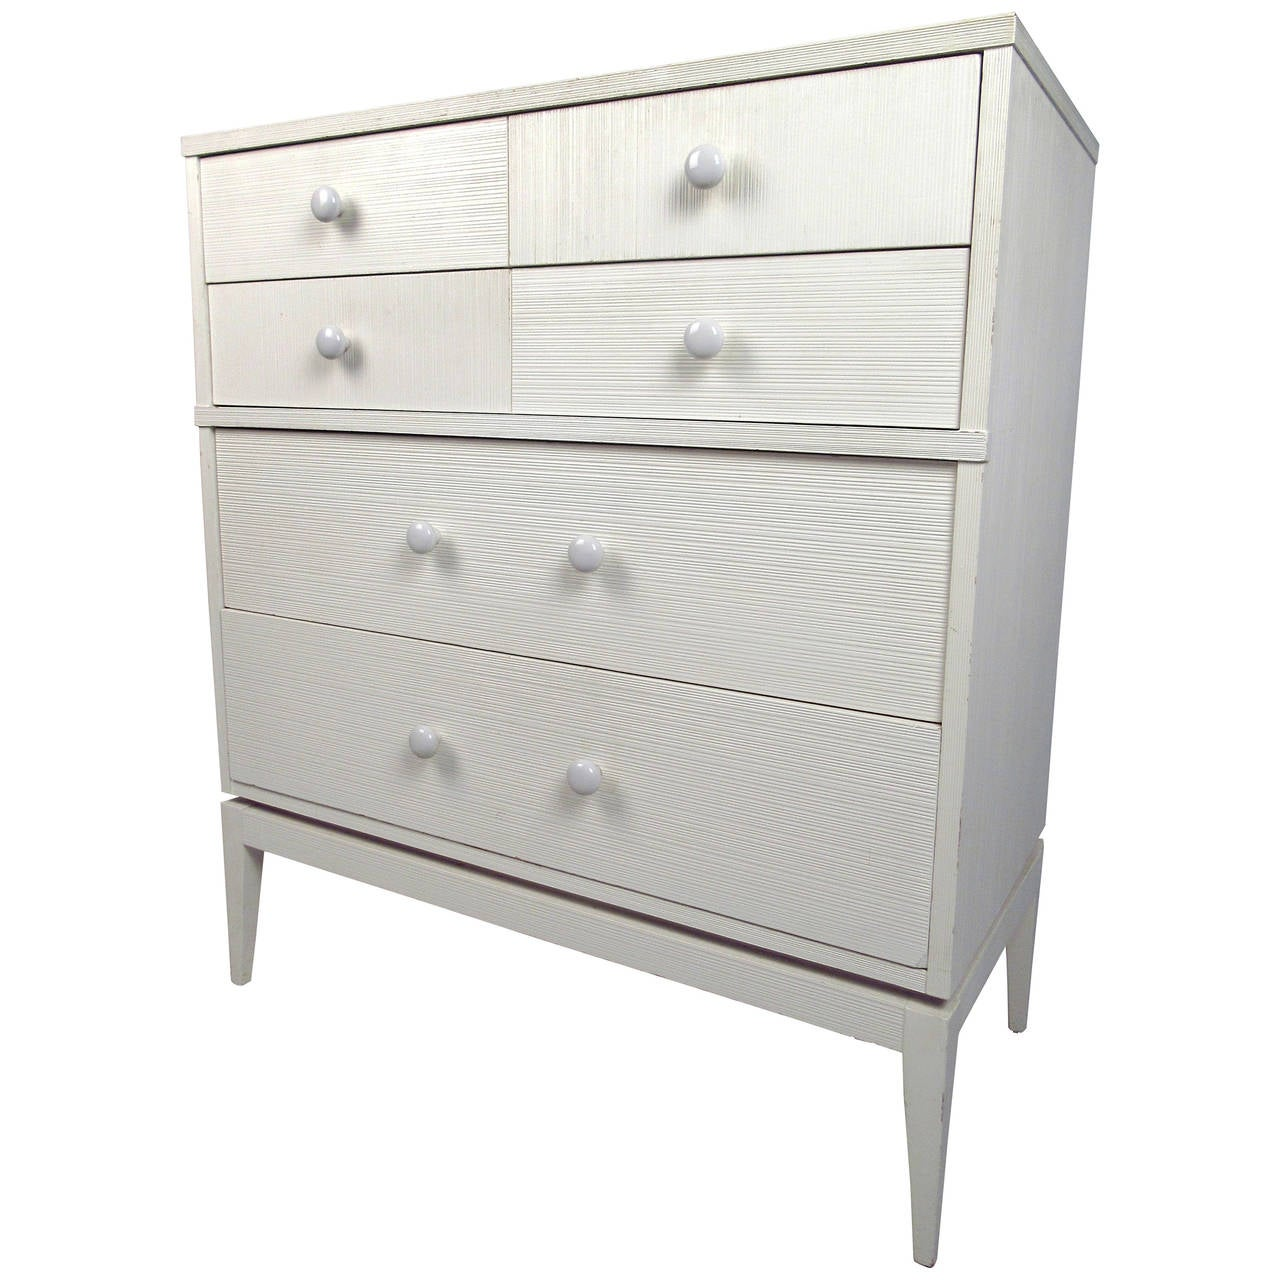 White Four-Drawer High Boy Dresser by Kroehler Furniture